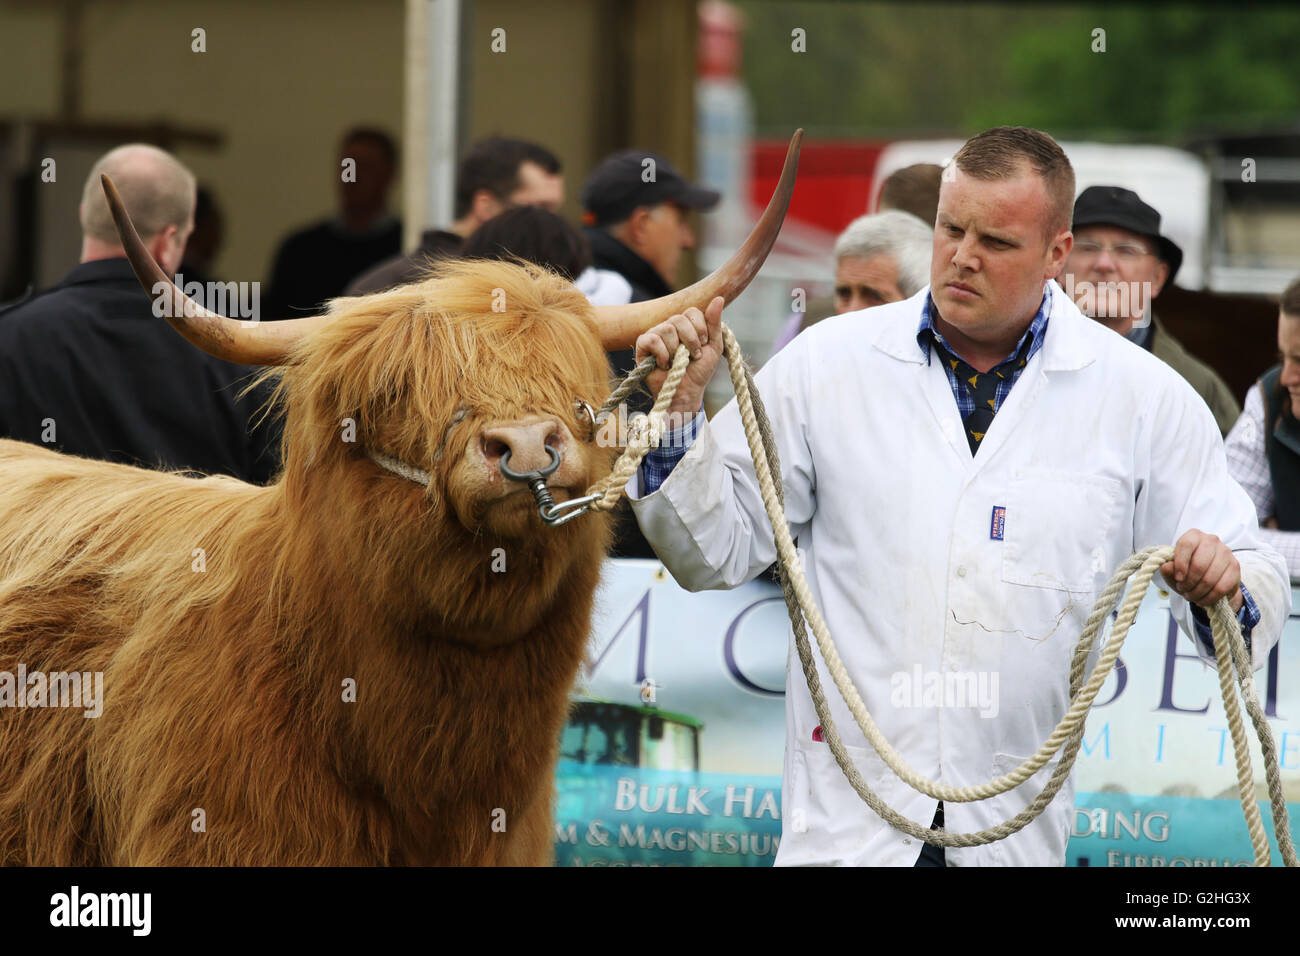 Bywell, England - May 30, 2016: Highland cow at the Northumberland County Show at Bywell in Northumberland, England. - Stock Image